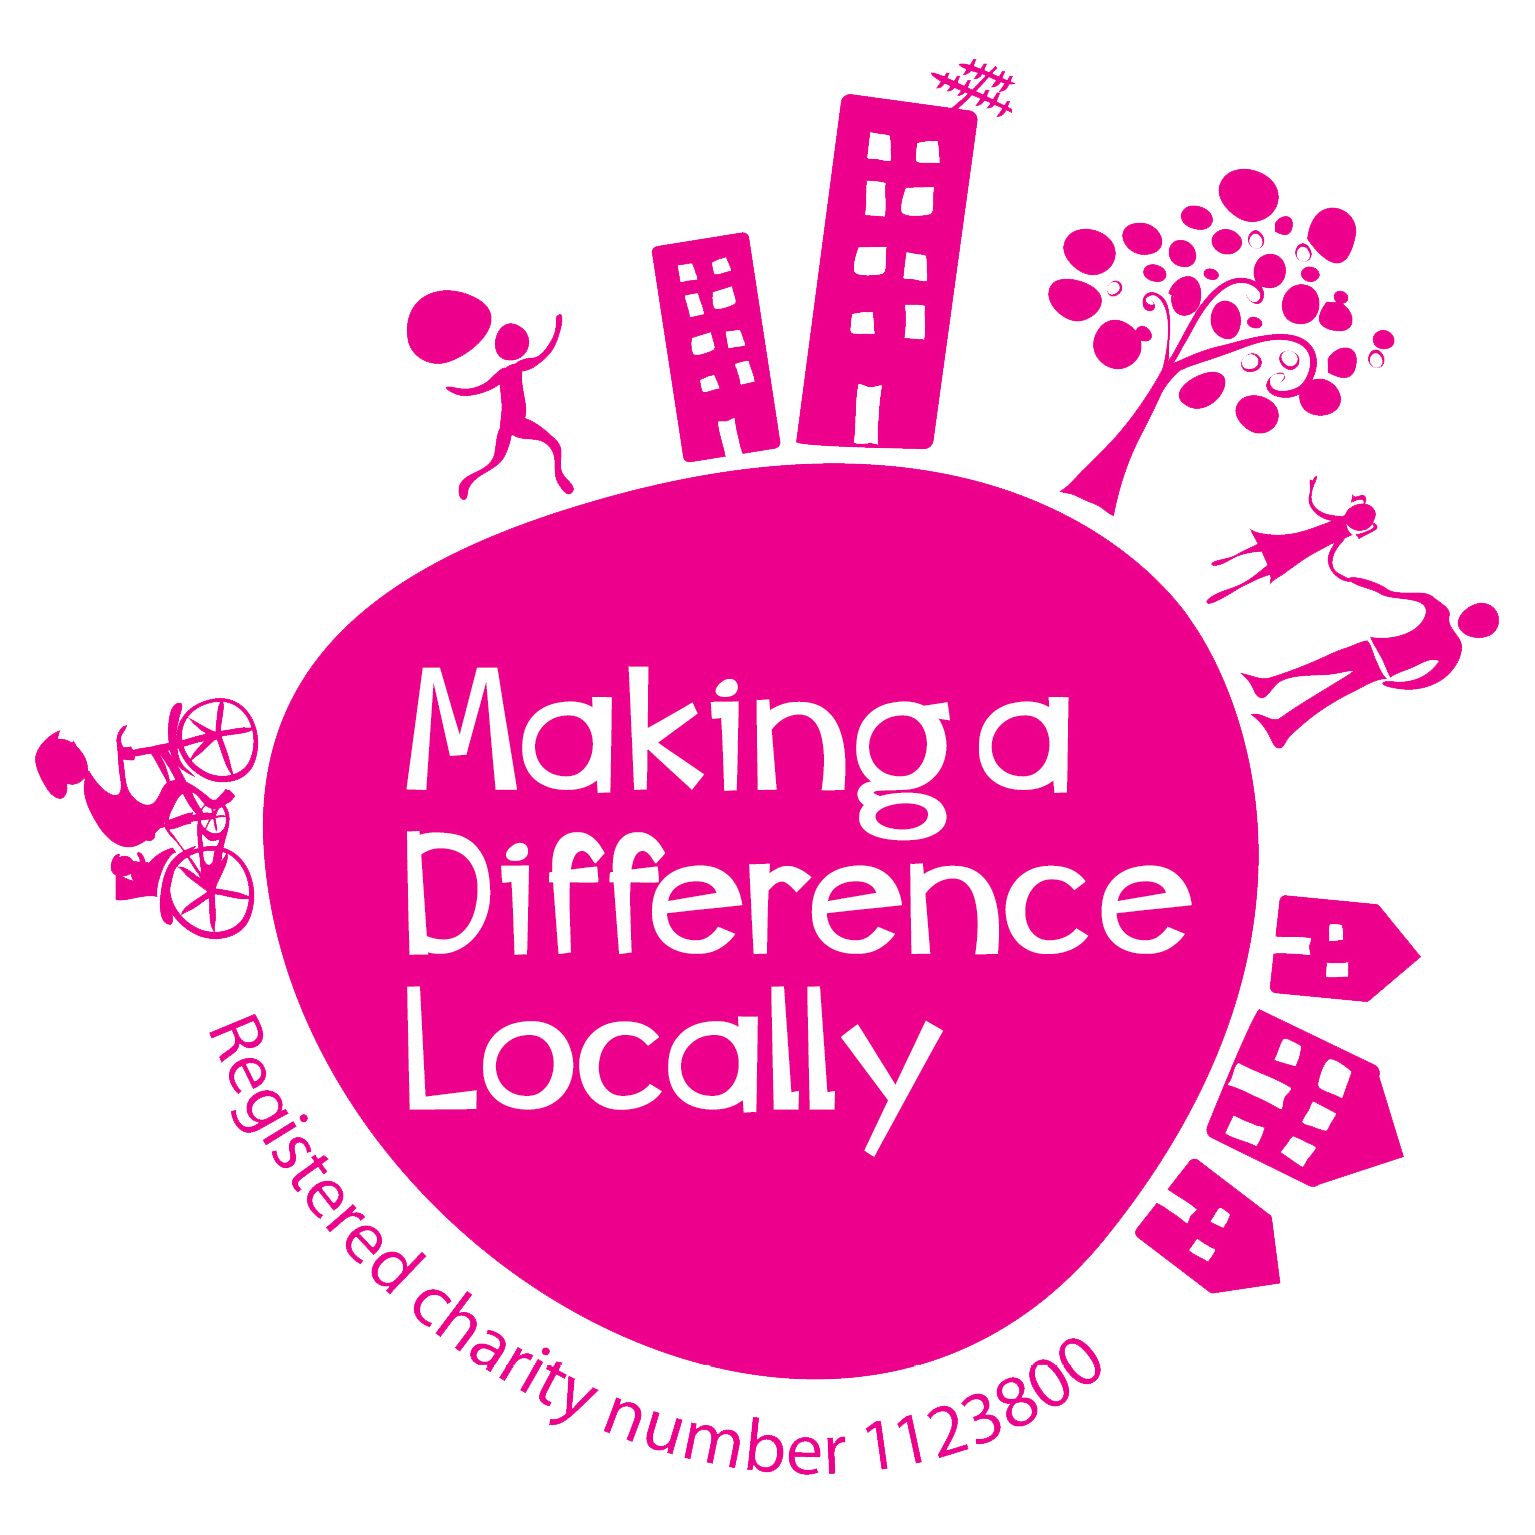 Making a Difference Locally